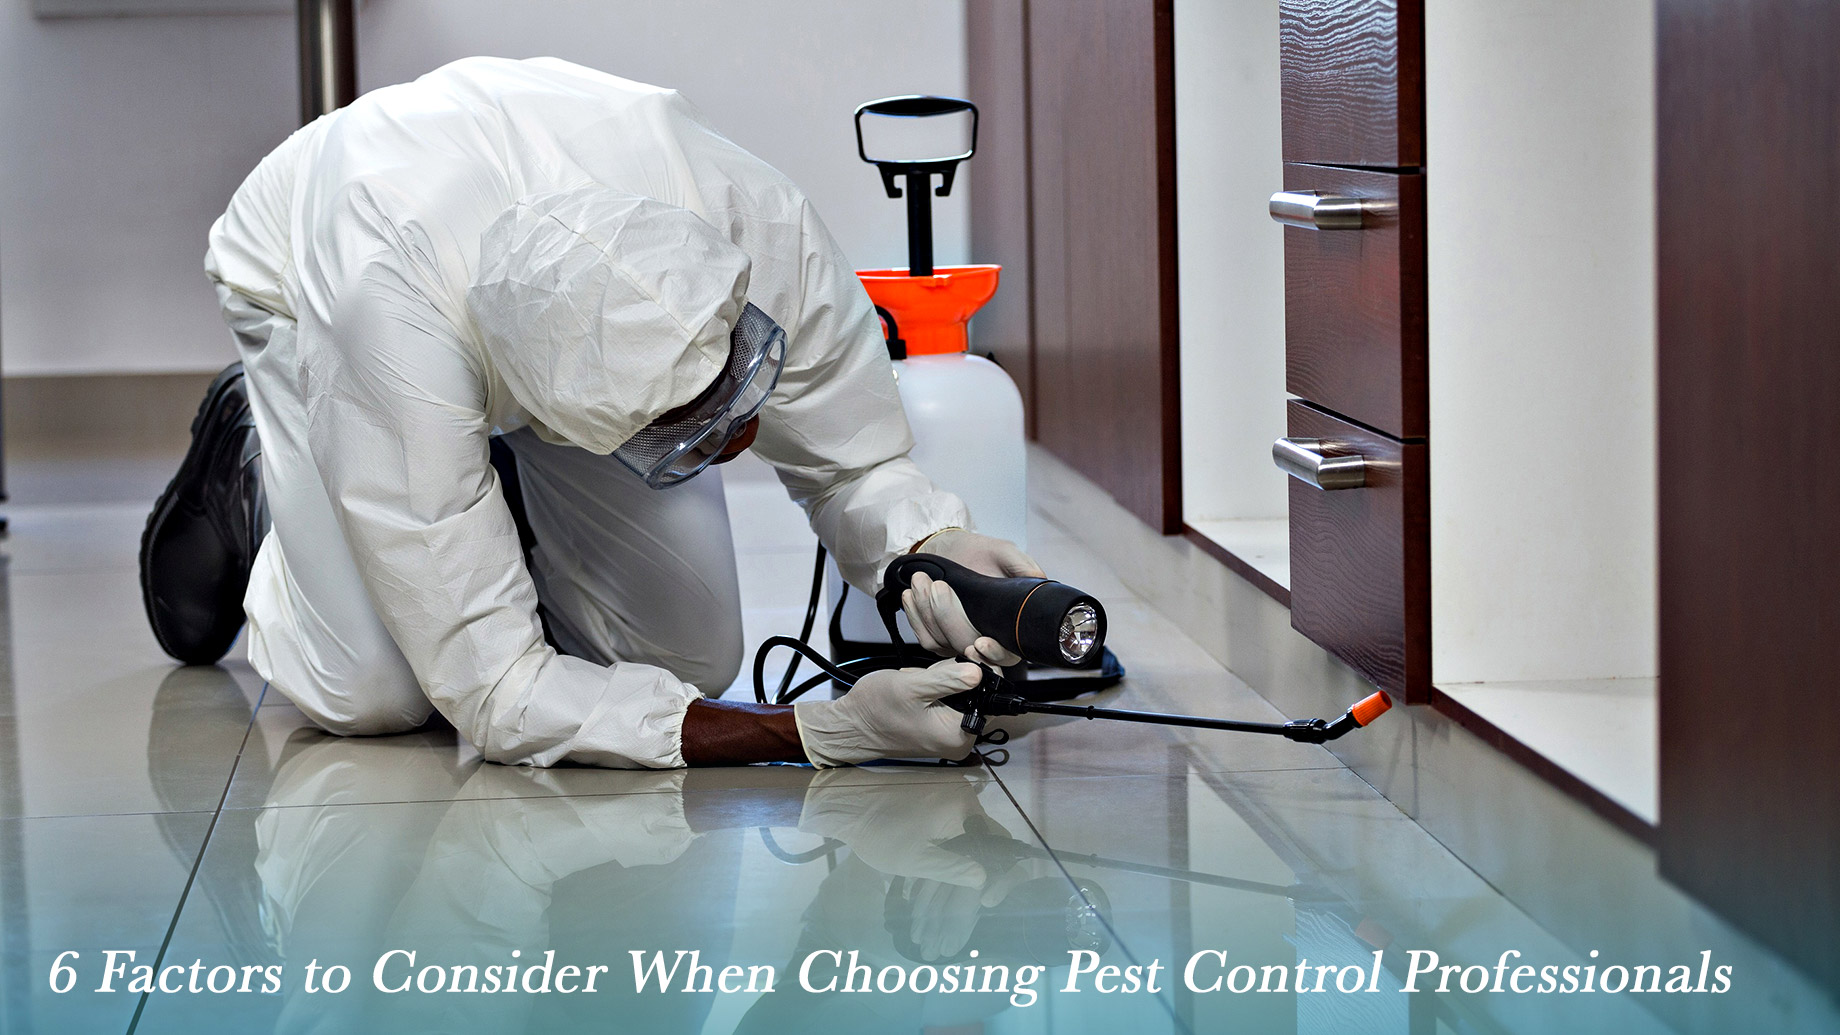 6 Factors to Consider When Choosing Pest Control Professionals